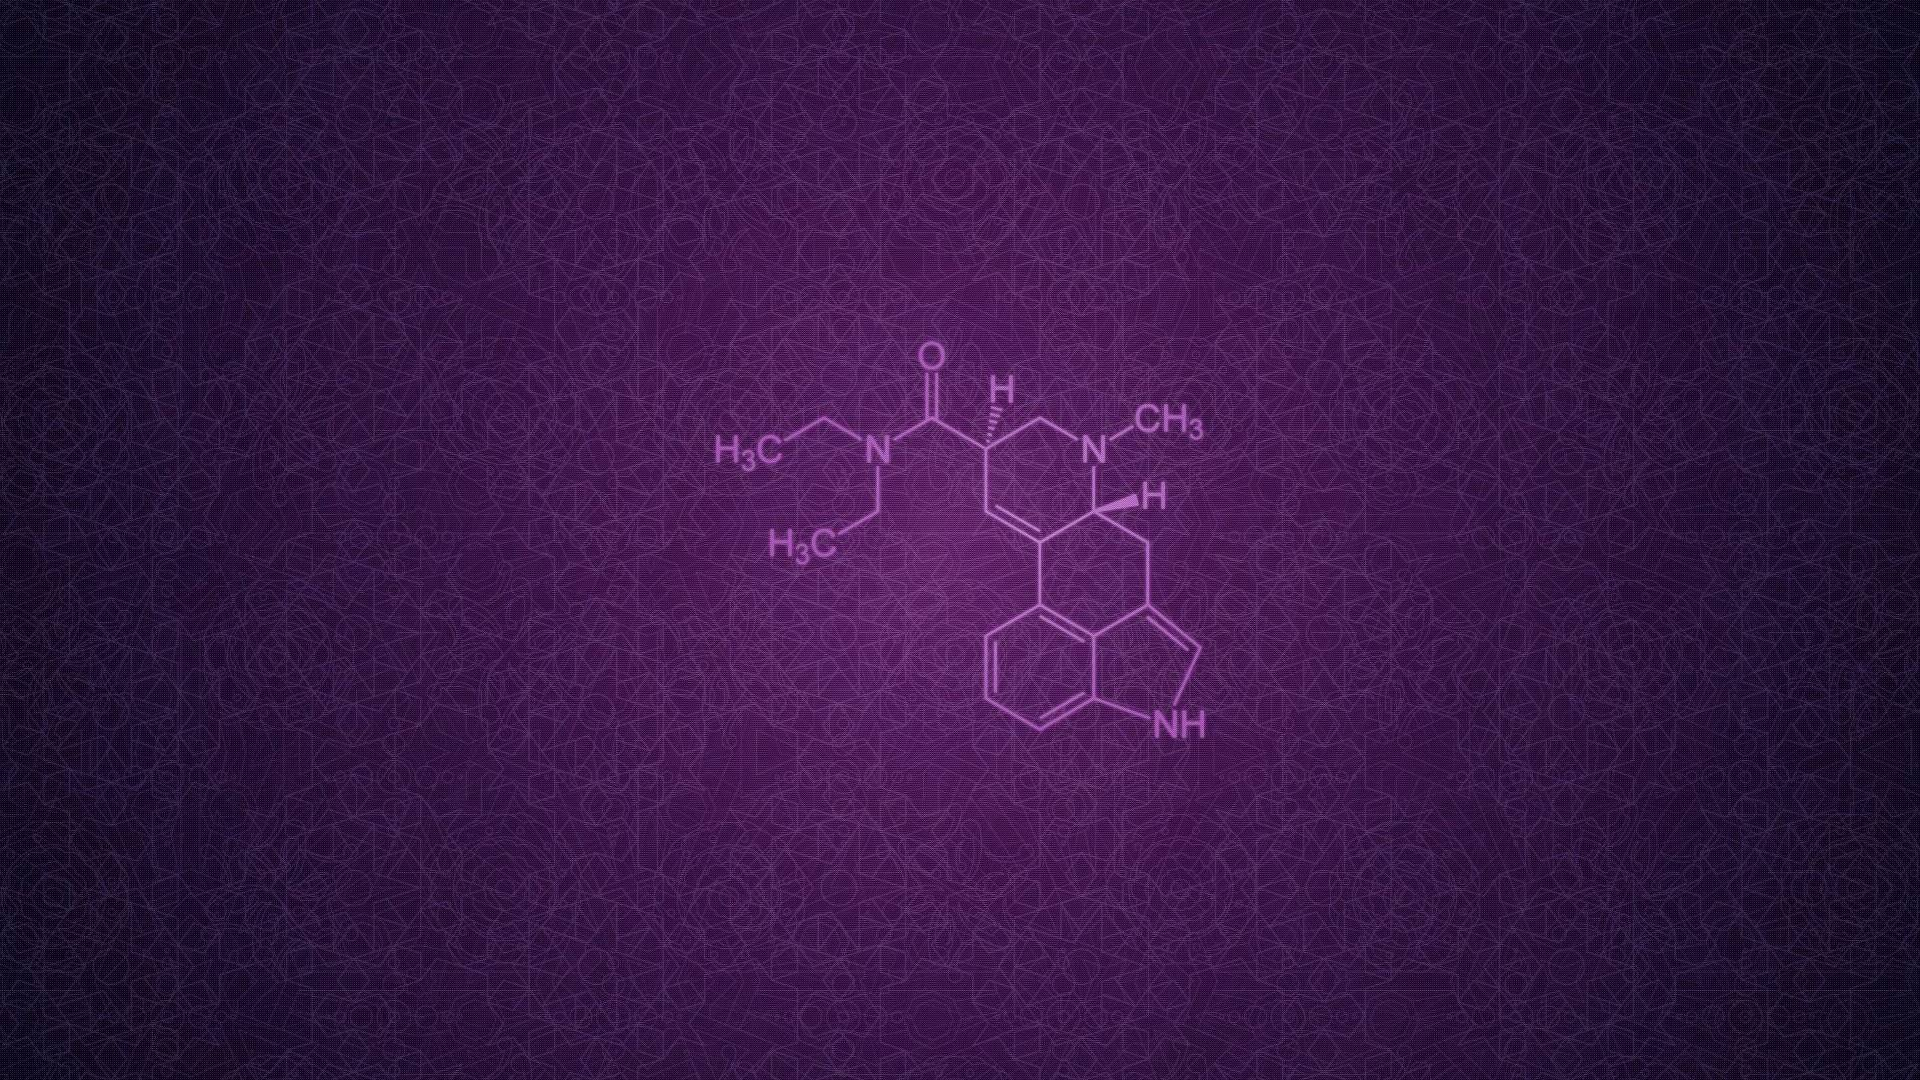 molecule-typography-hd-wallpaper-1920x1080-9815